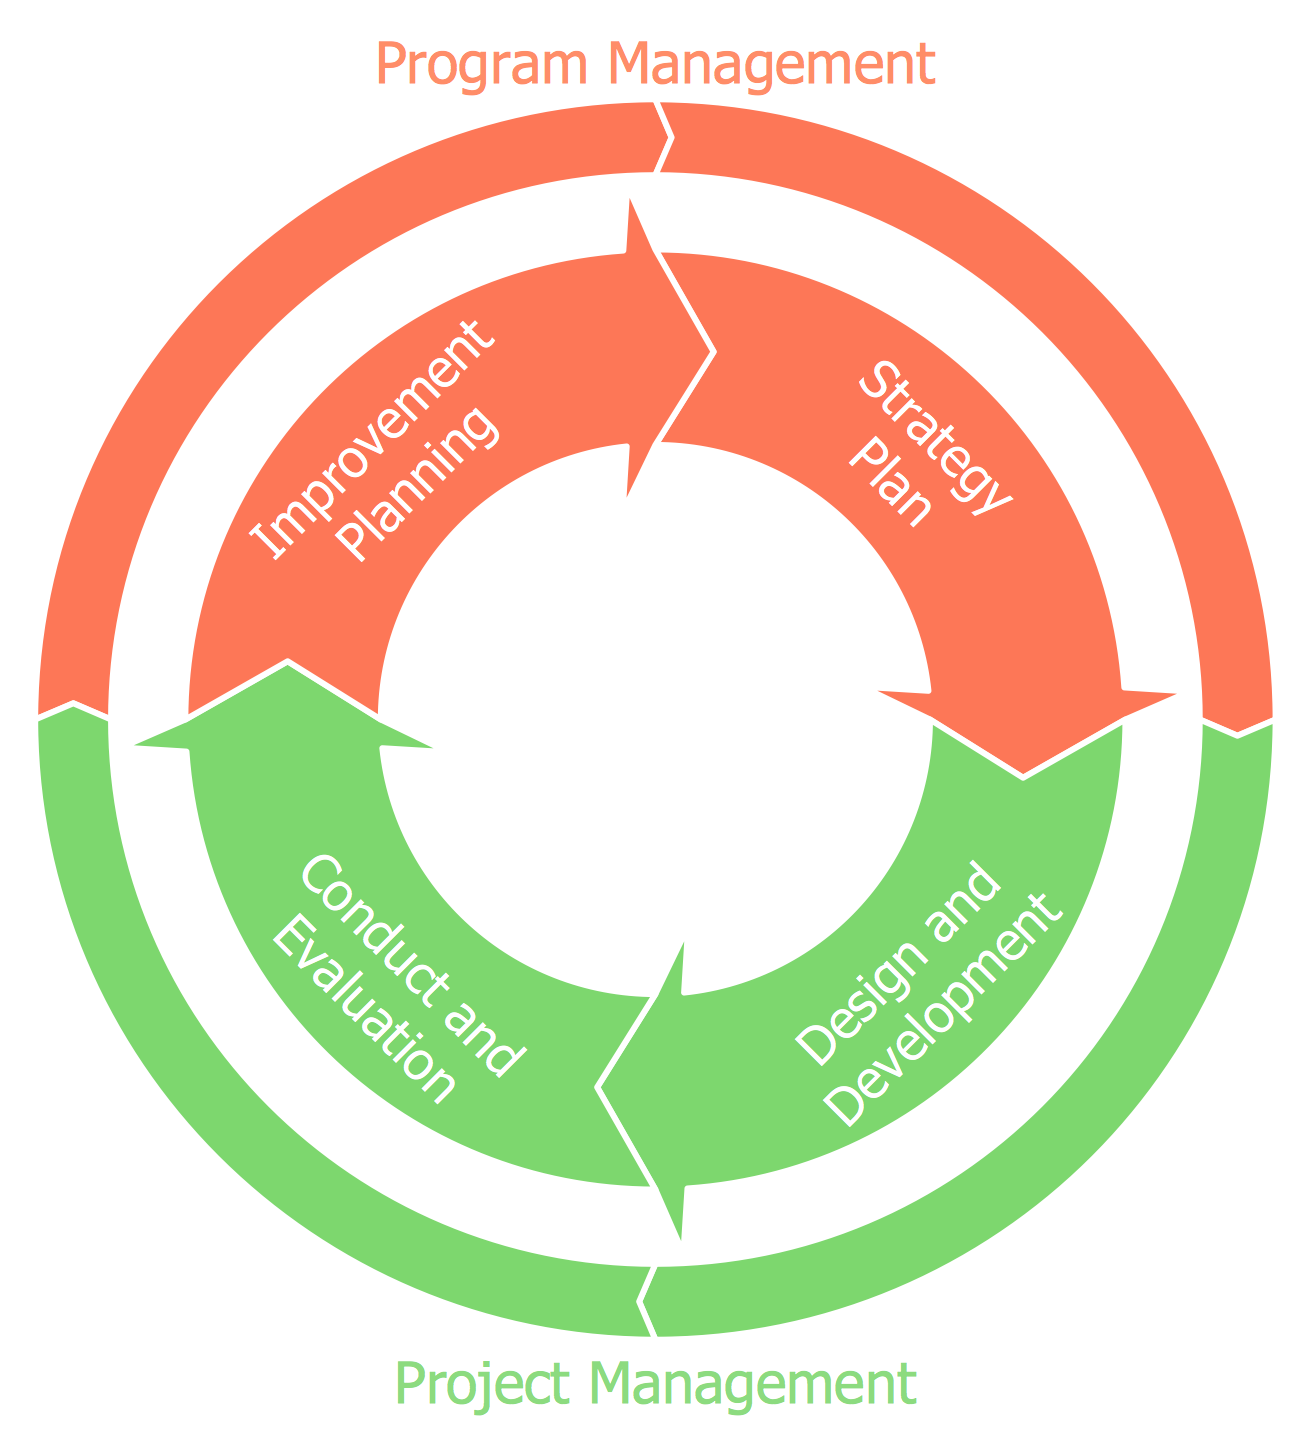 Basic Circular Arrows Diagram - Management Exercise Cycle